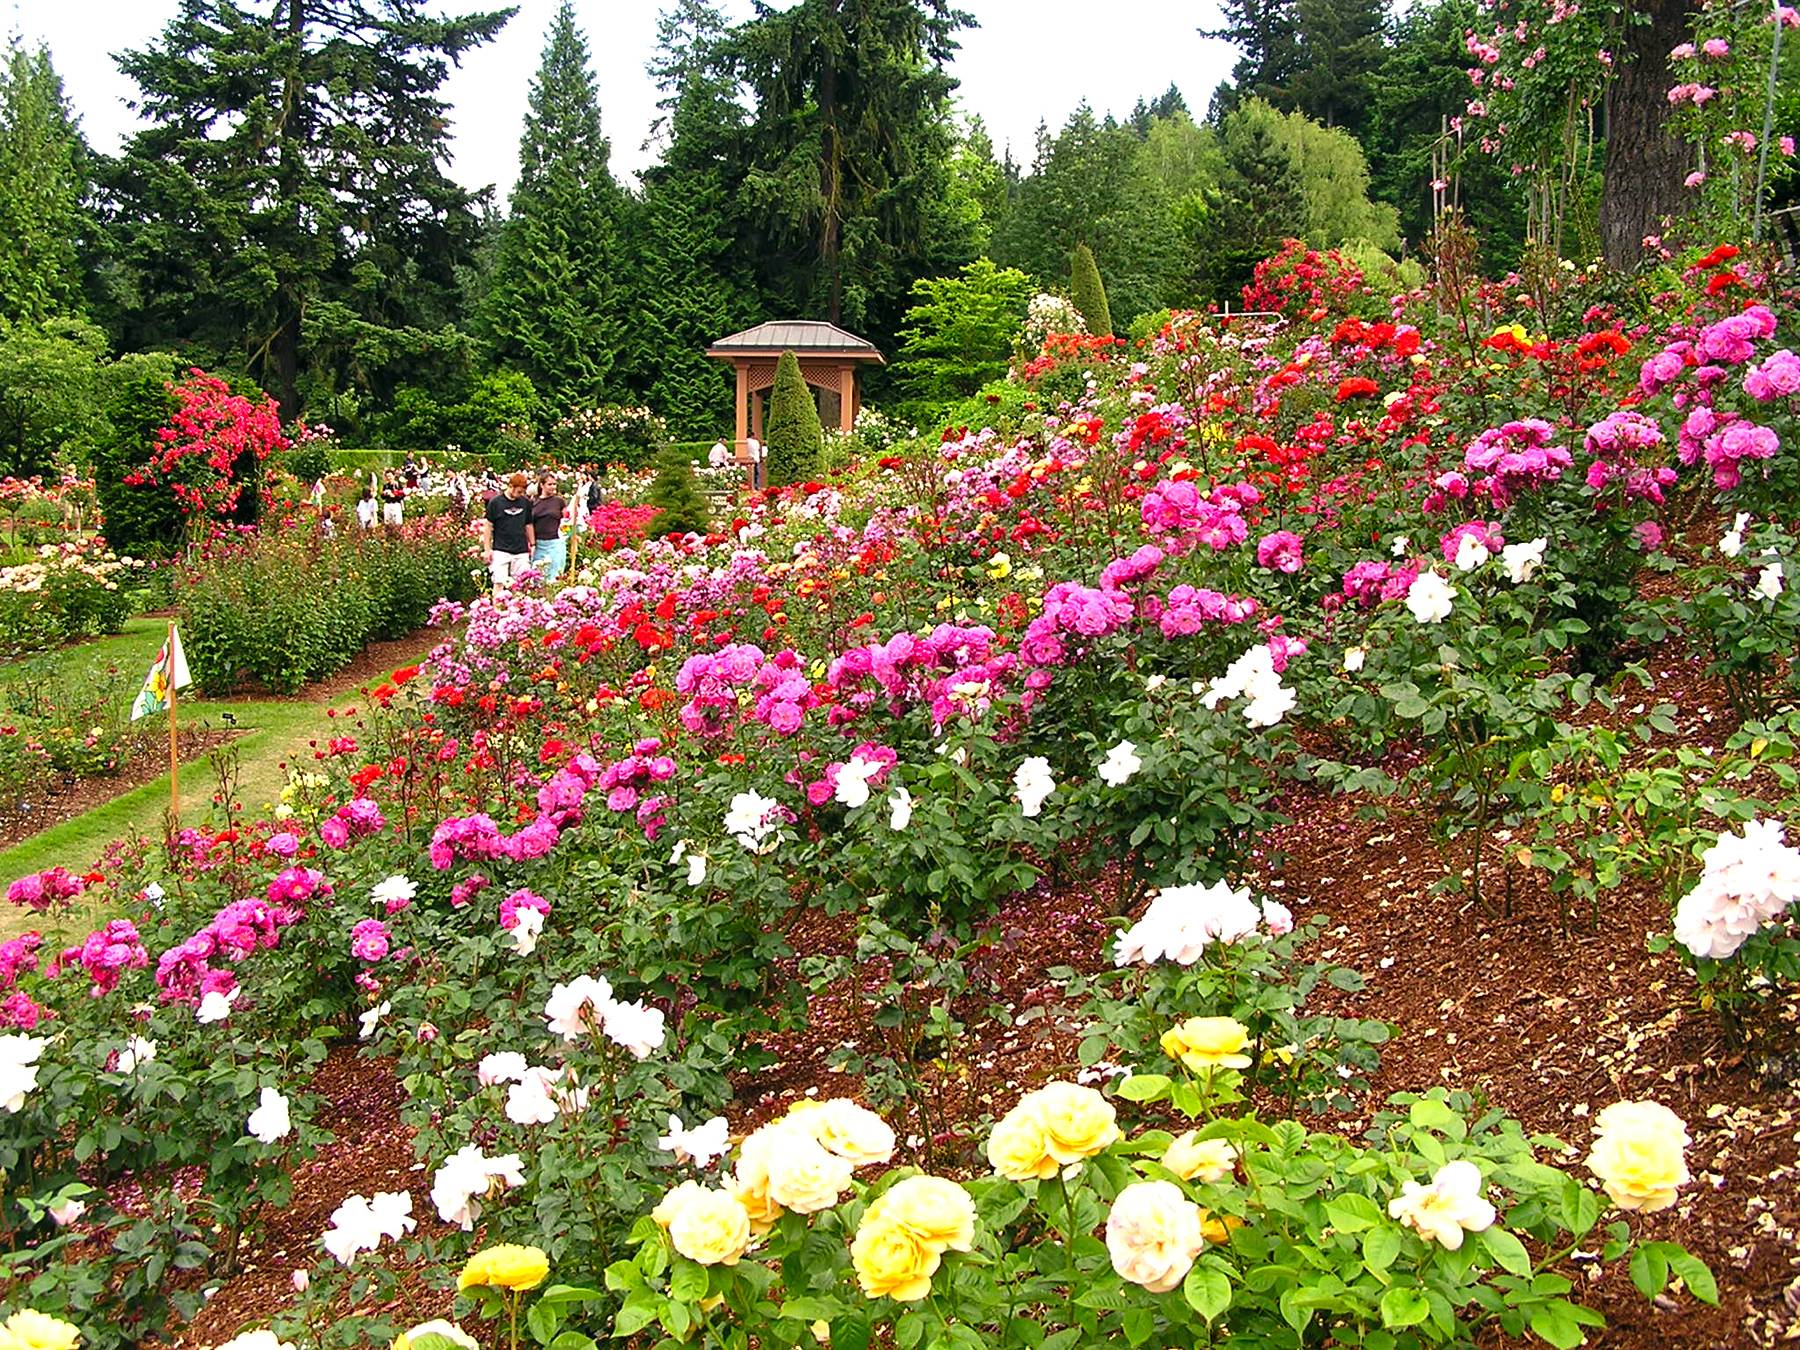 The International Rose Test Garden in Washington Park in Portland, Ore., was founded during World War I as a way to preserve plants that European hybridists feared might be wiped out in the bombings. This summer marks 100 years since the start of World War I in Europe in 1914.